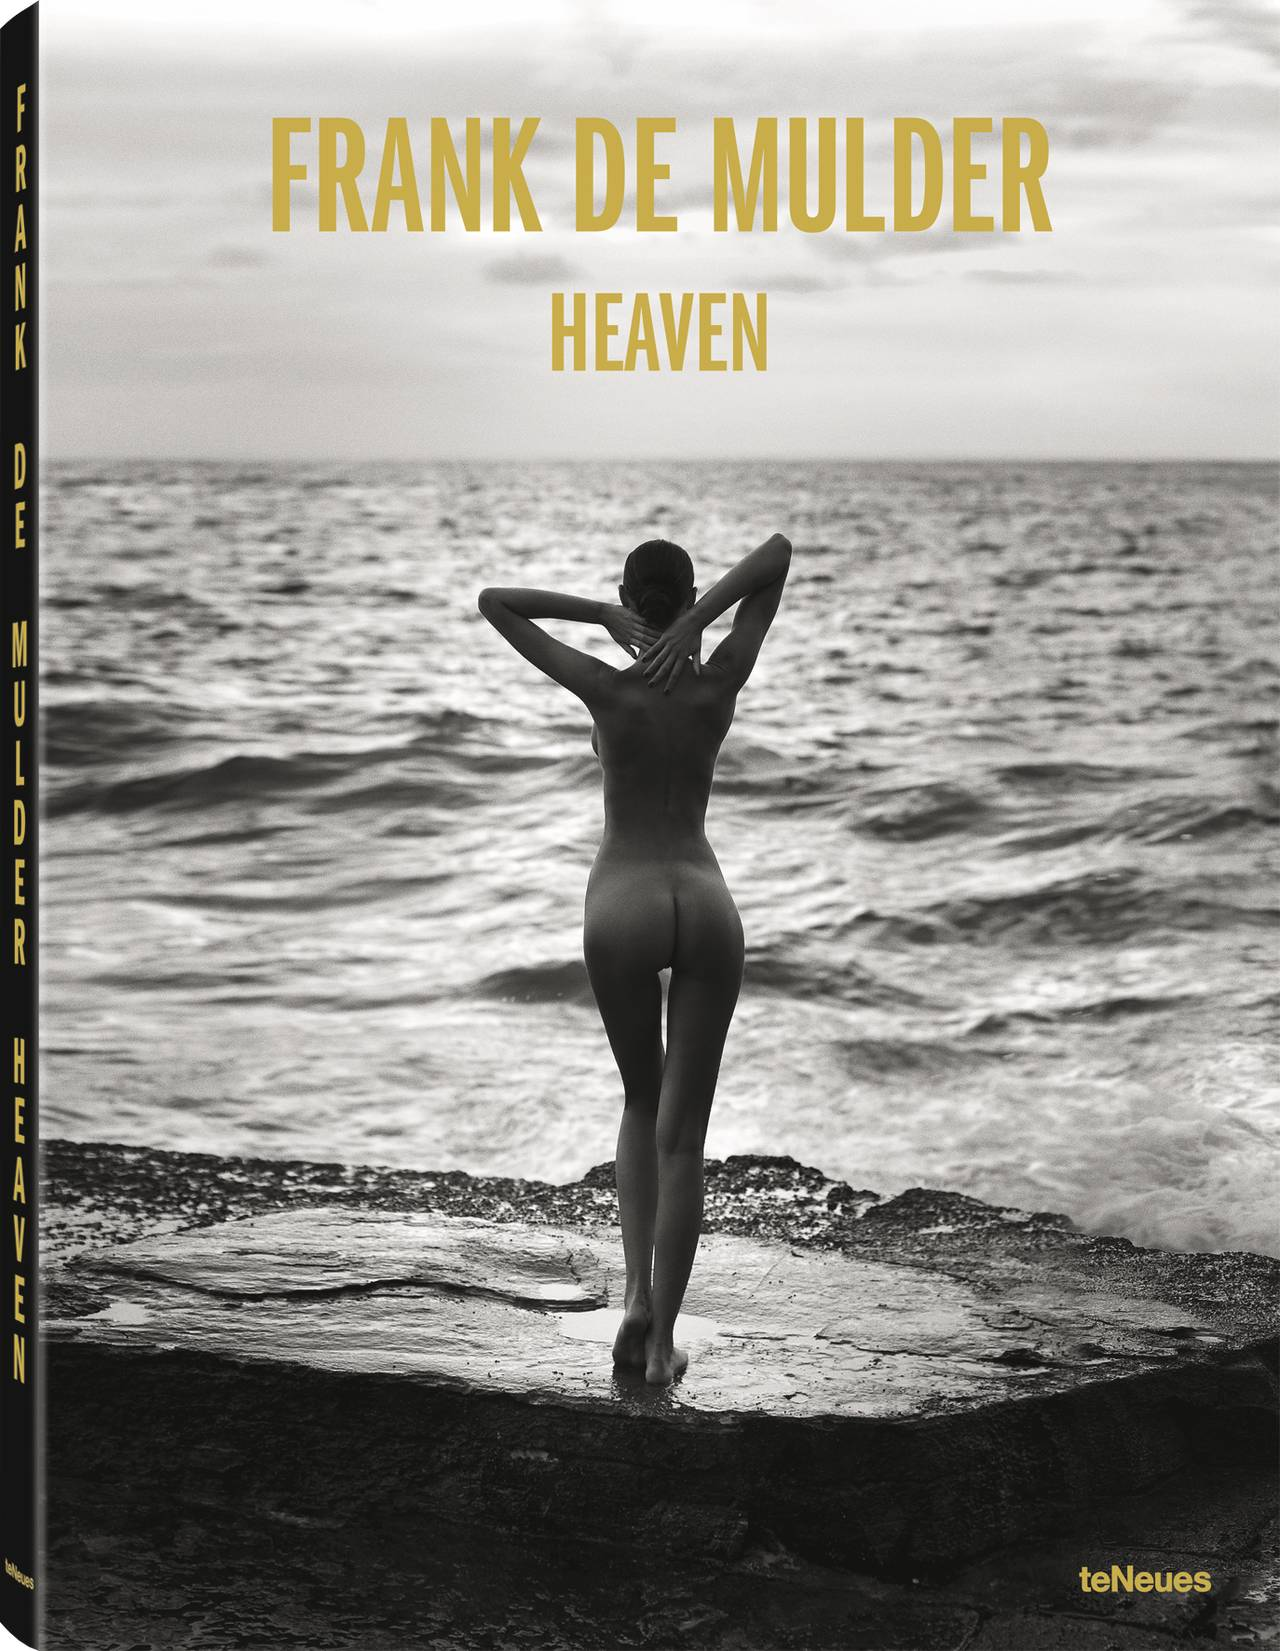 © Heaven by Frank De Mulder, published by teNeues, www.teneues.com. The Mermaid's Mirror, Photo © 2015 Frank De Mulder. All rights reserved. www.frankdemulder.com